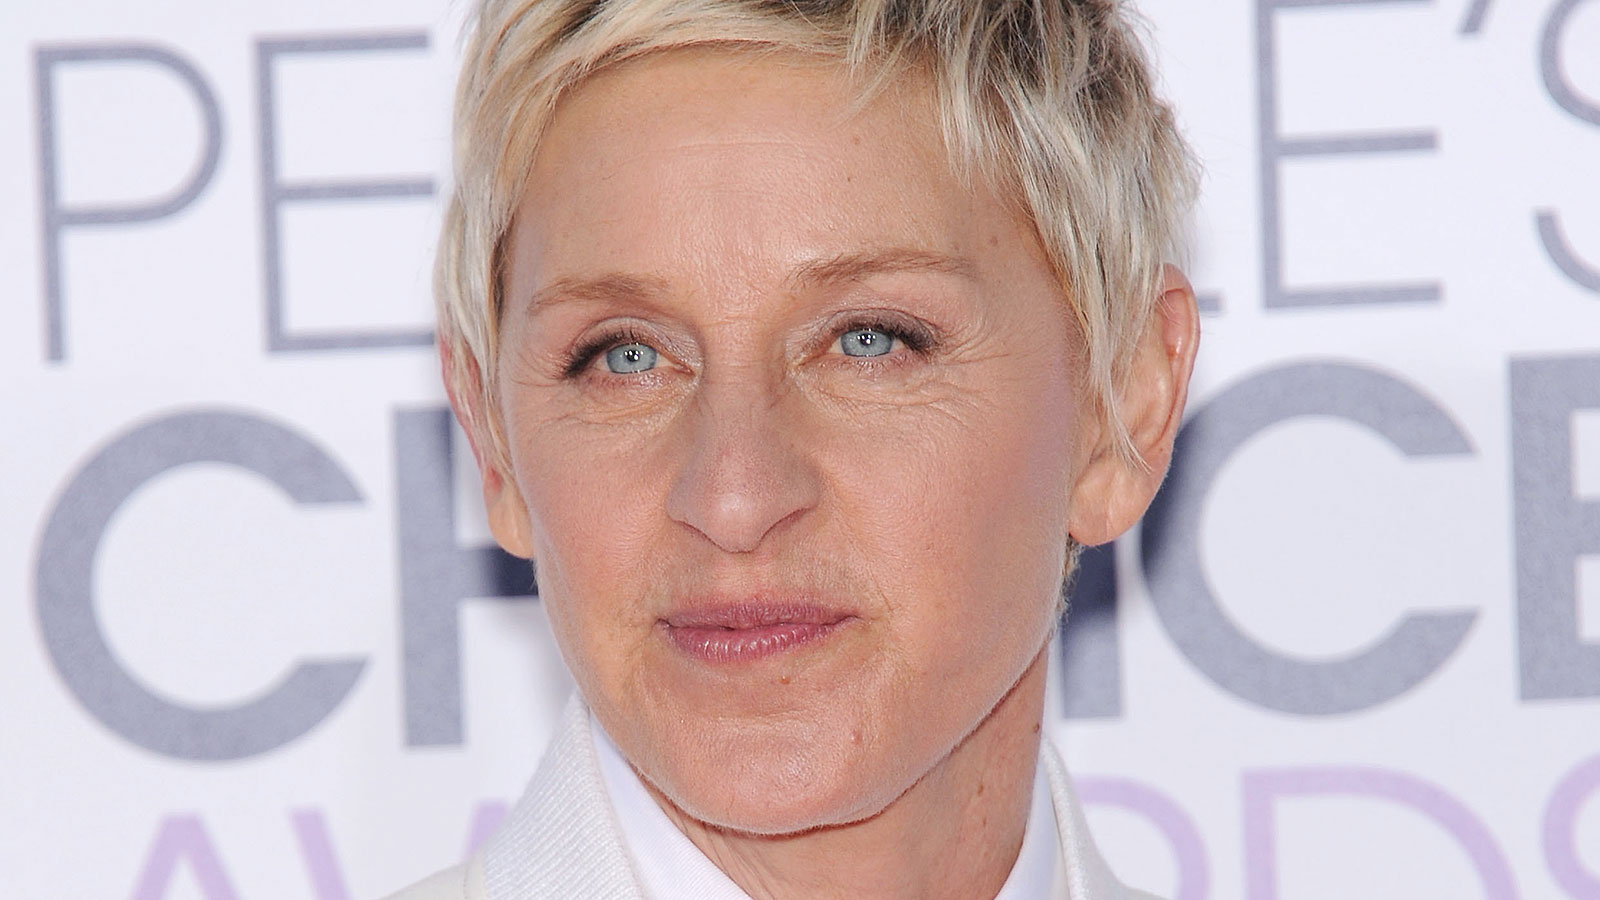 Ellen DeGeneres has some thoughts about being kind at work